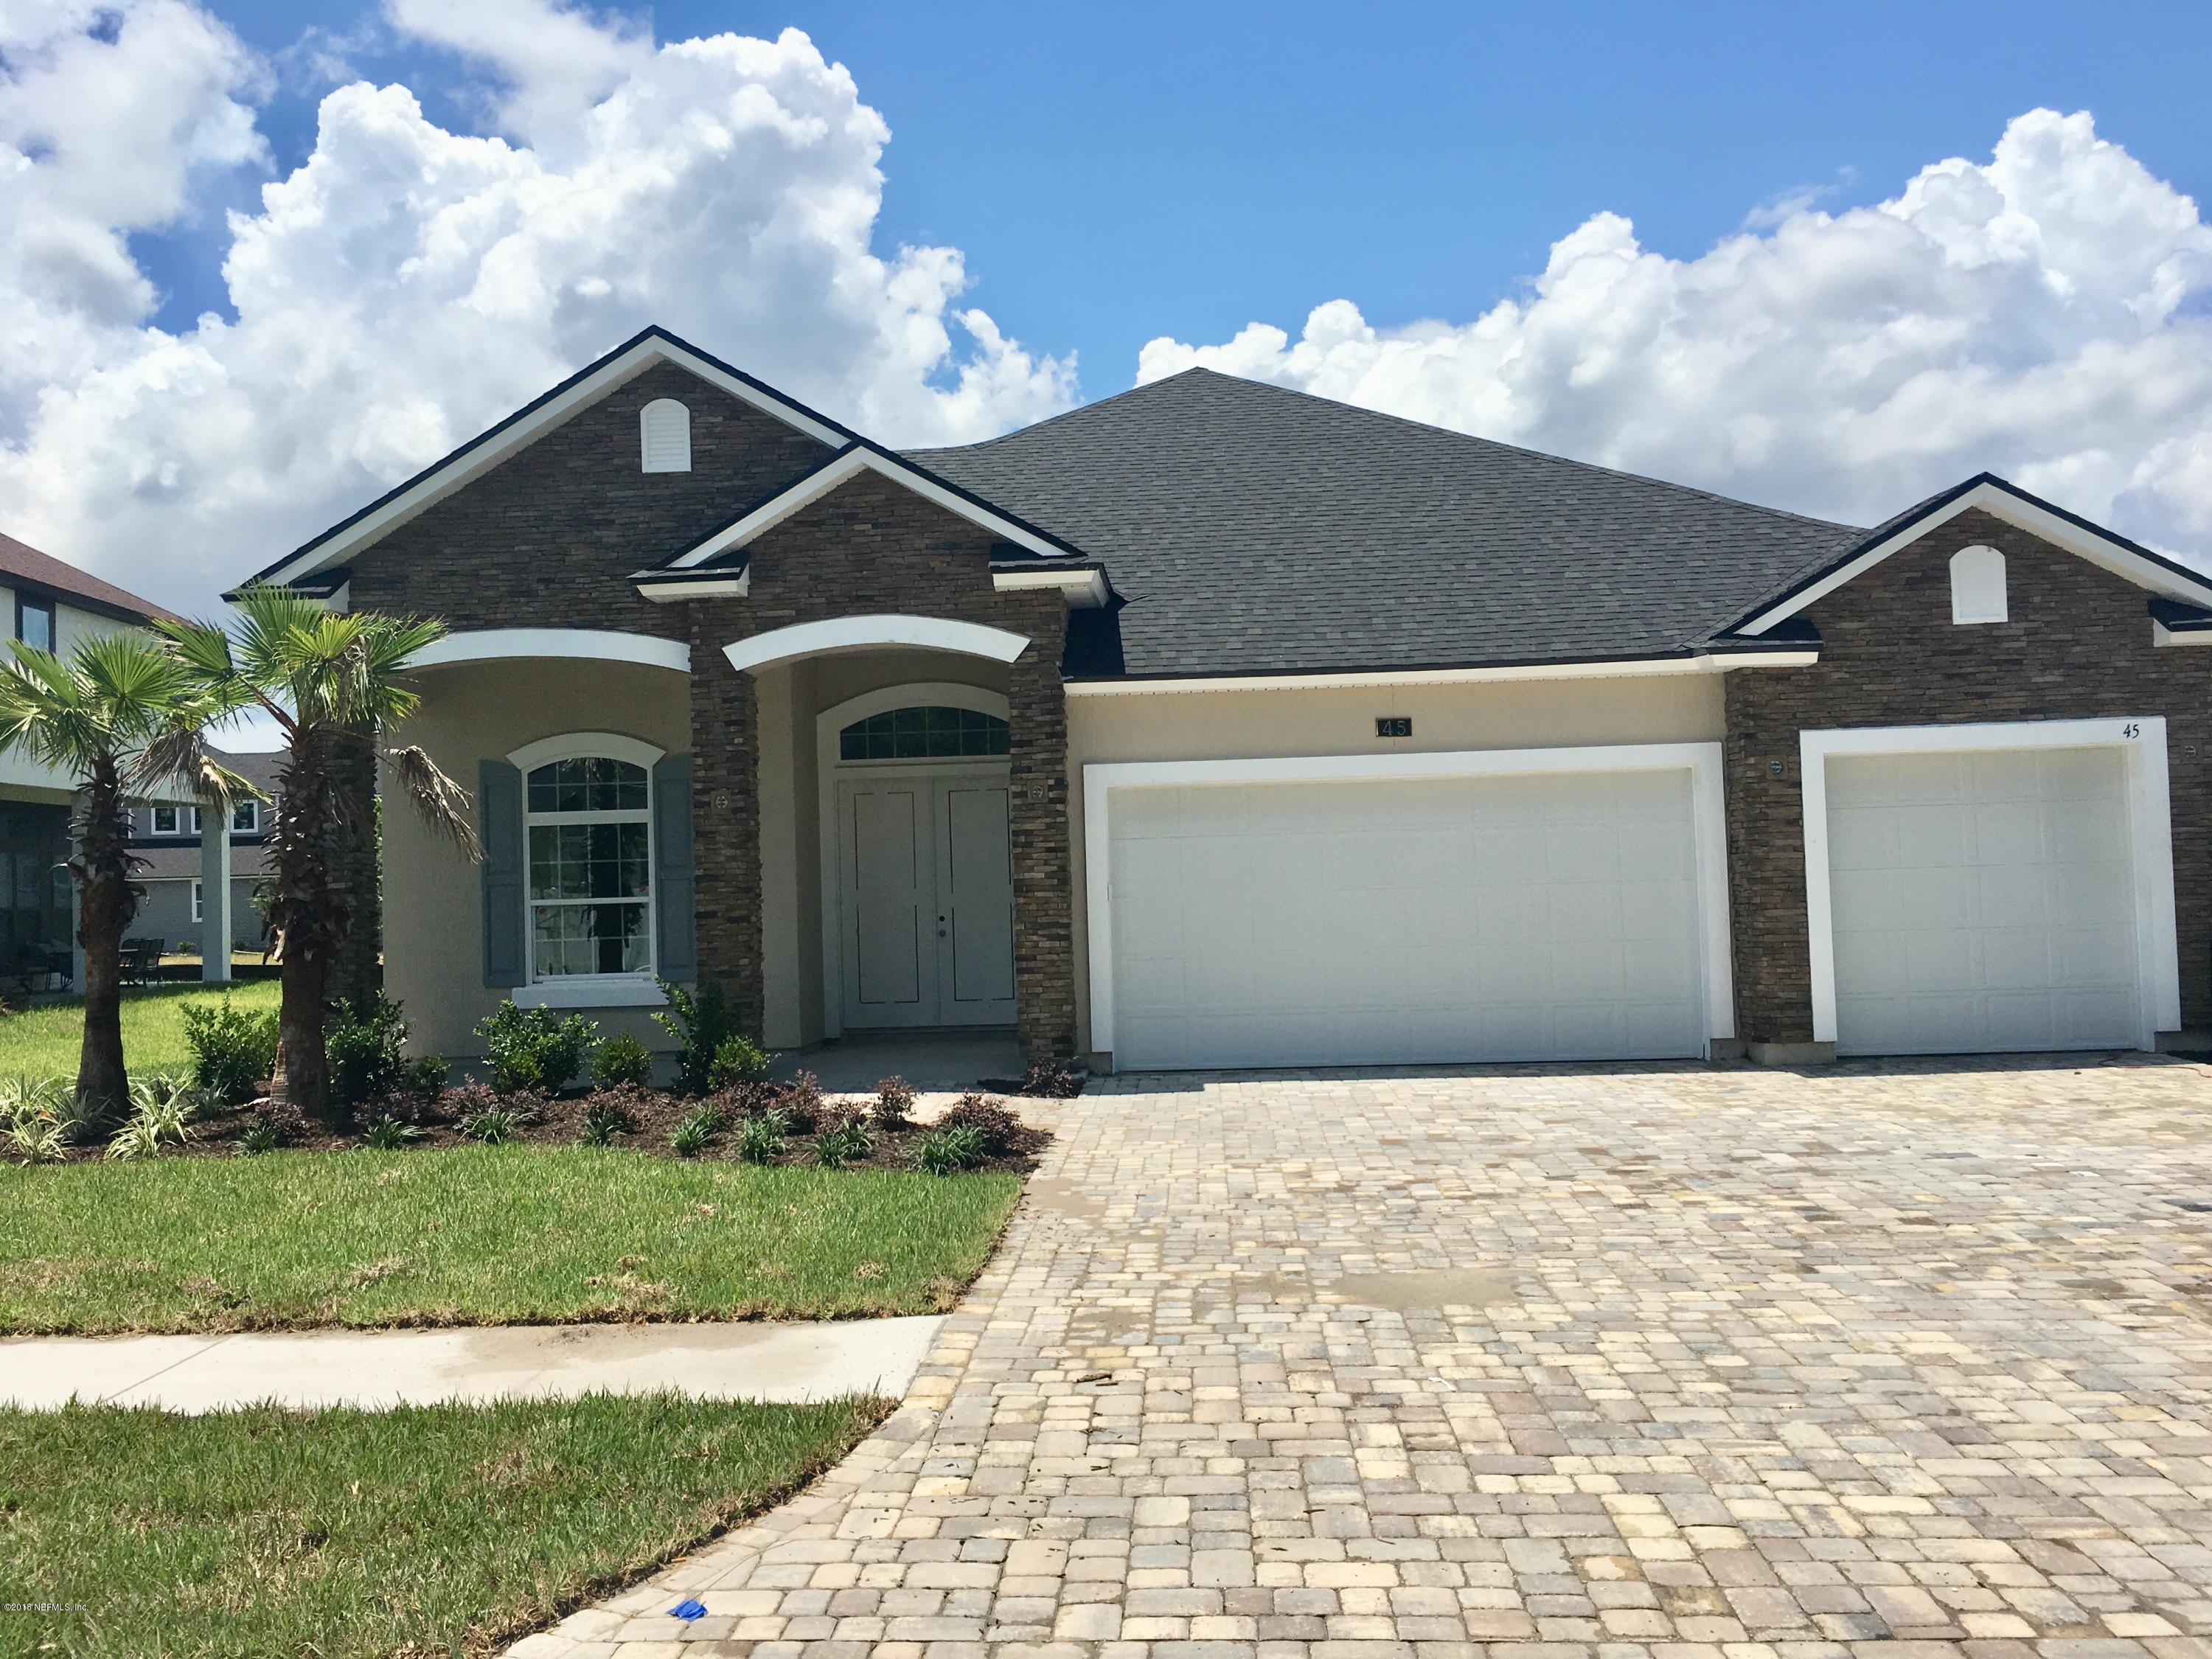 45 HUGUENOT, ST JOHNS, FLORIDA 32259, 4 Bedrooms Bedrooms, ,3 BathroomsBathrooms,Residential - single family,For sale,HUGUENOT,920953